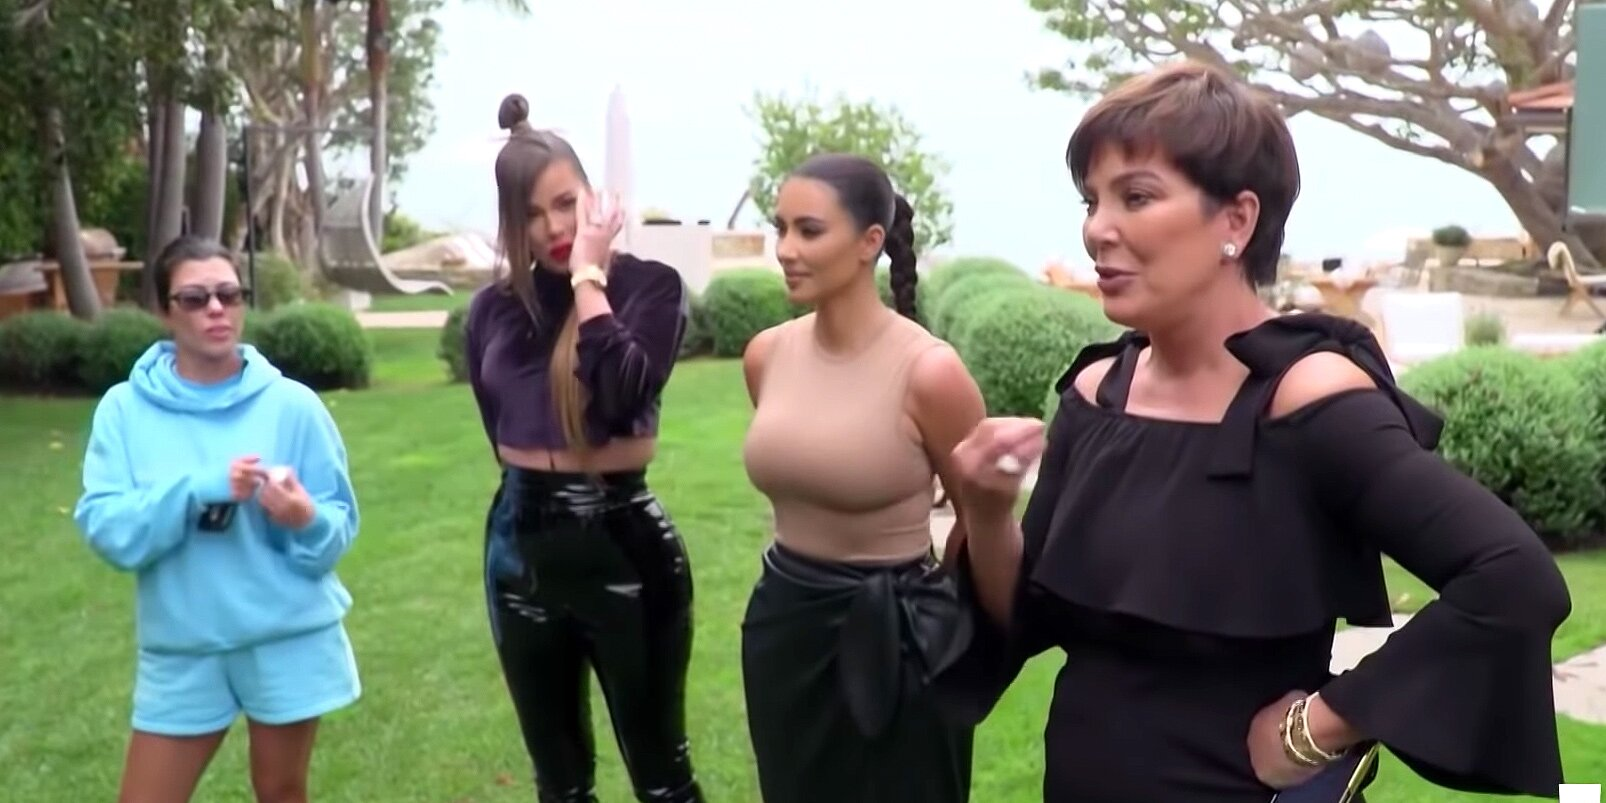 KUWTK: Kardashians Tear Up As They Tell Their 'Second Family' Production Crew the Show Is Ending